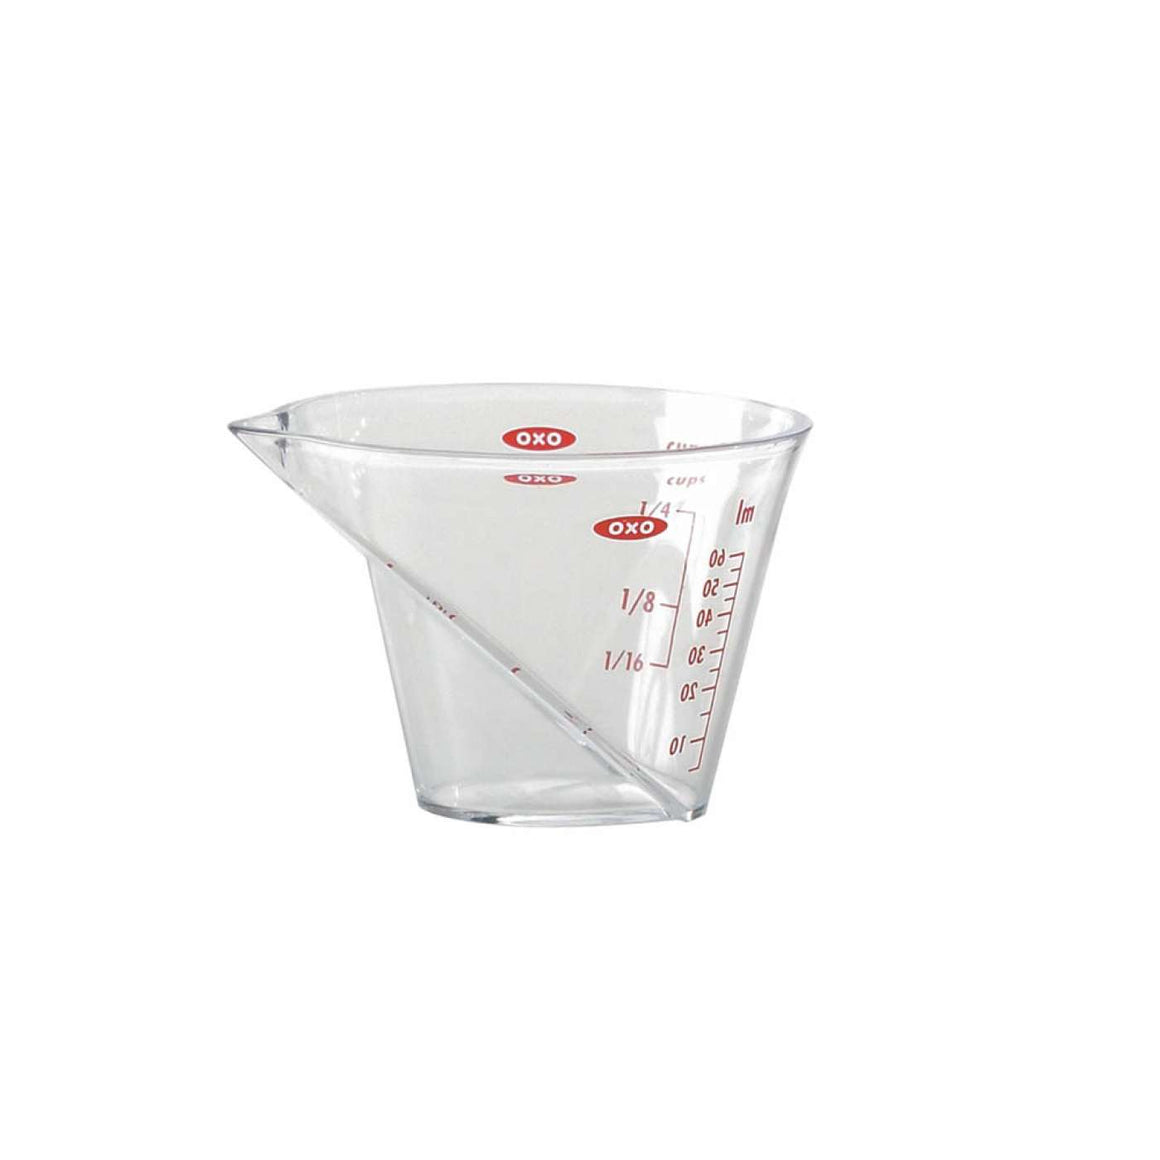 Good Grips Mini Angled Measuring Cup- 1/4 cup